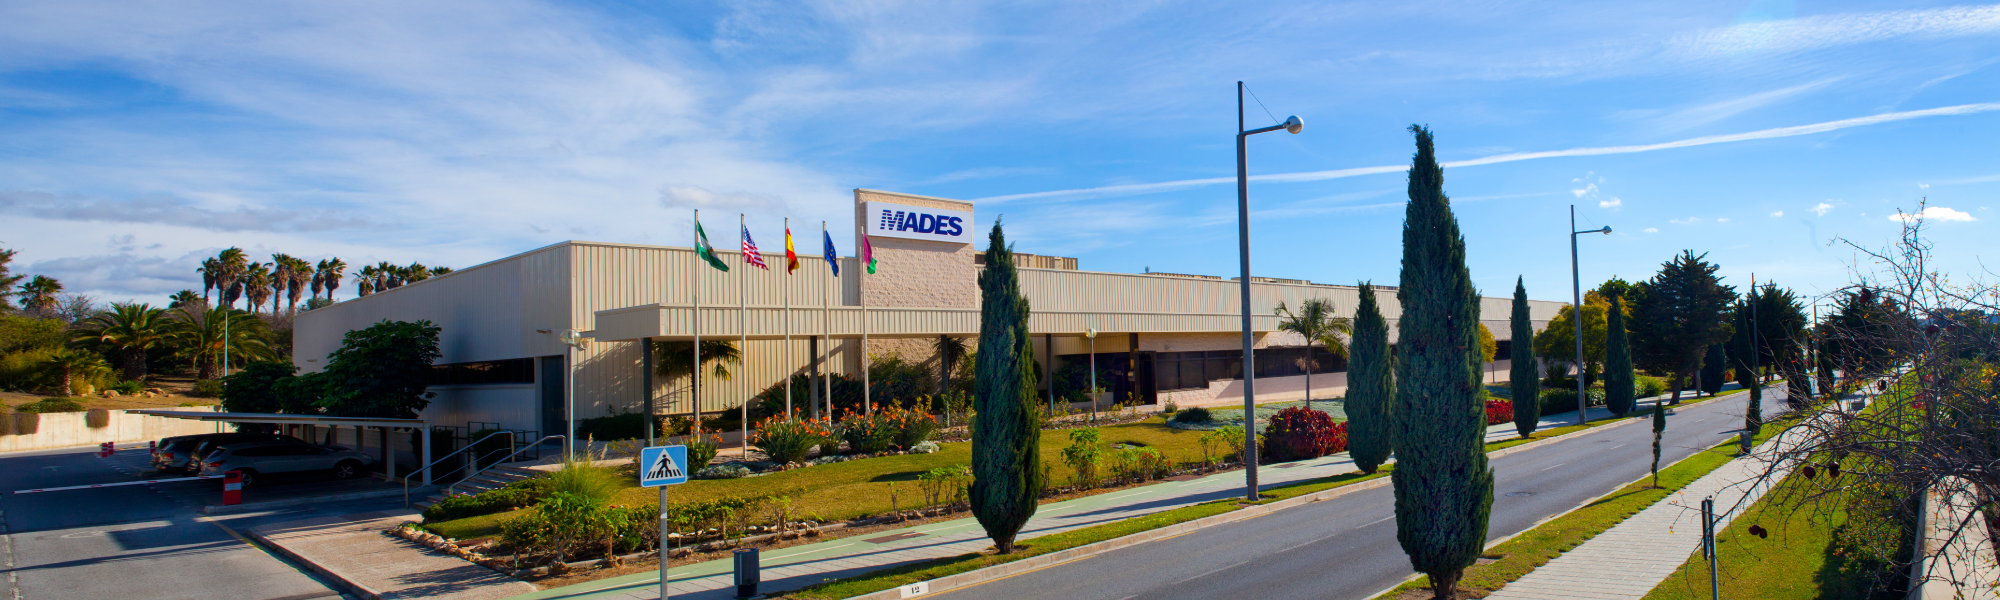 MADES Electronic Systems Integration - Prototyping and Design